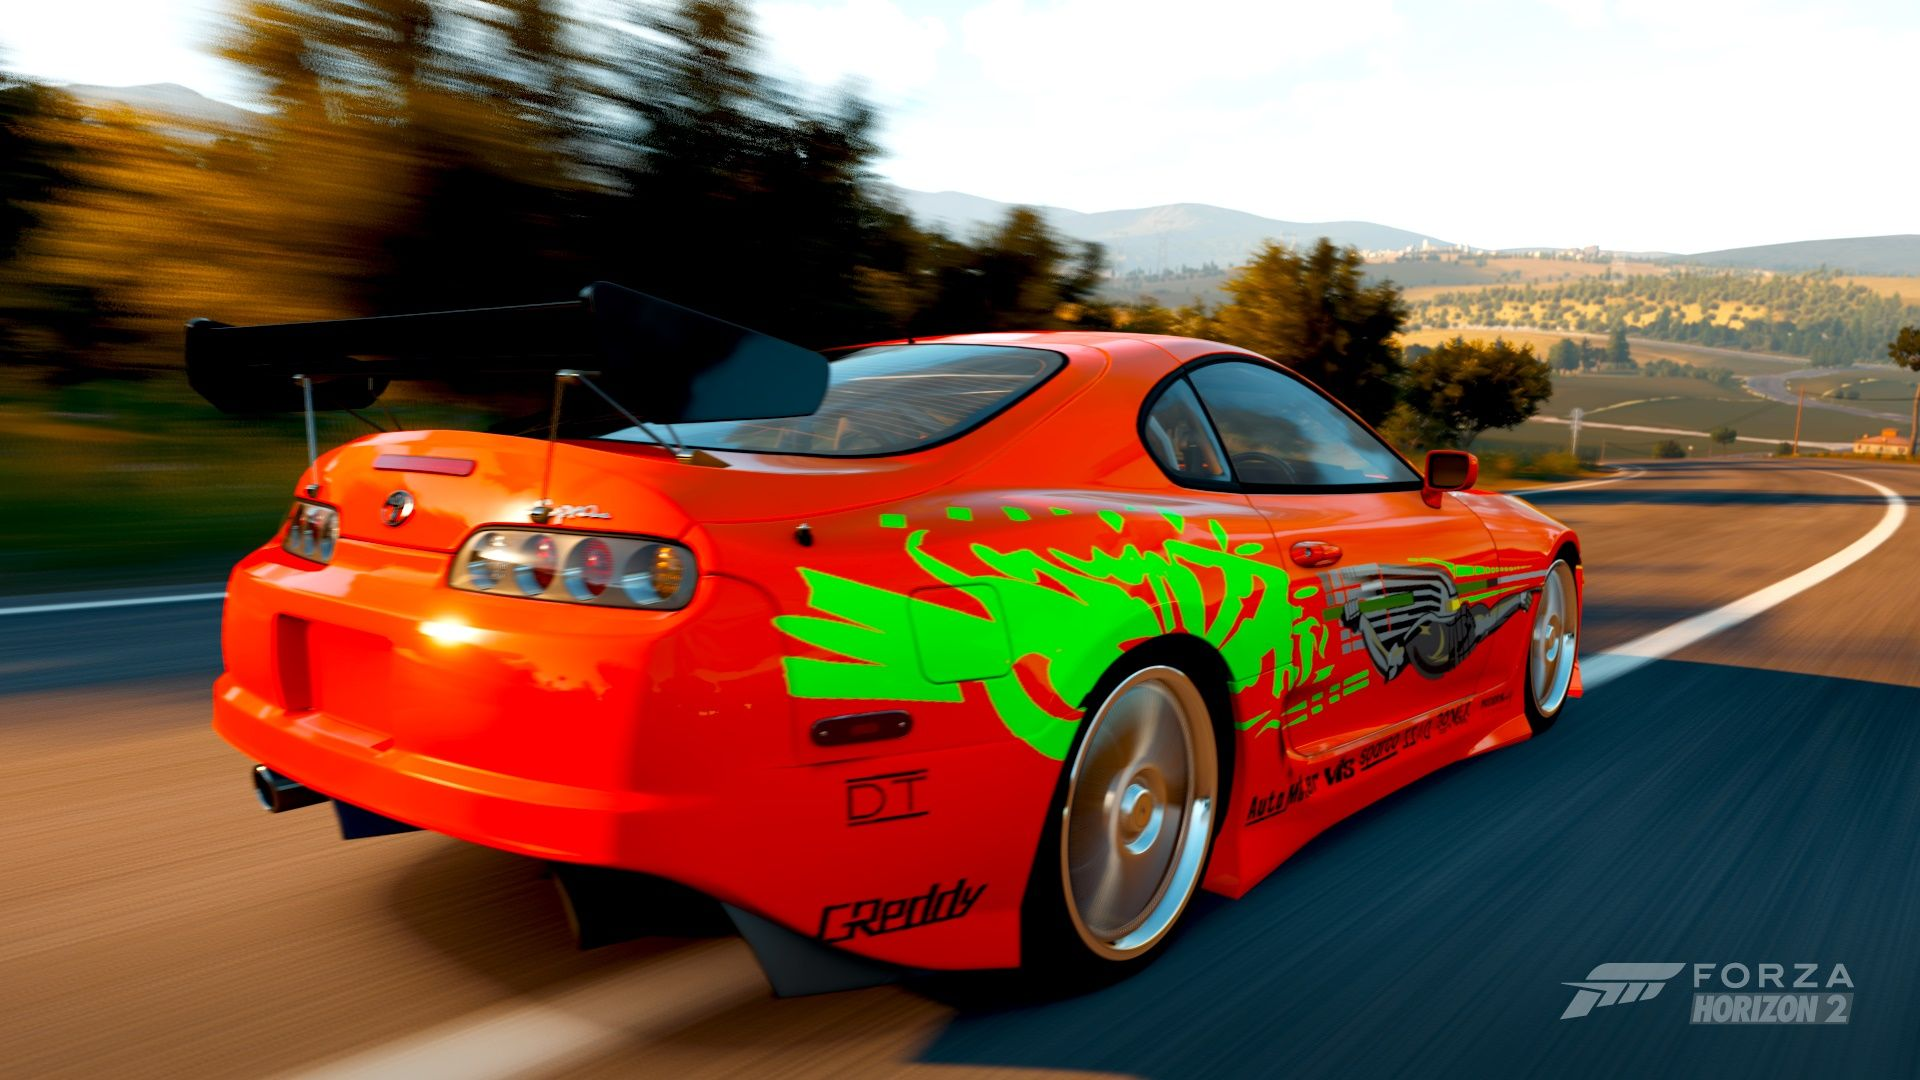 Paul Walkeru0027s Hero Supra In Fu0026F #forza